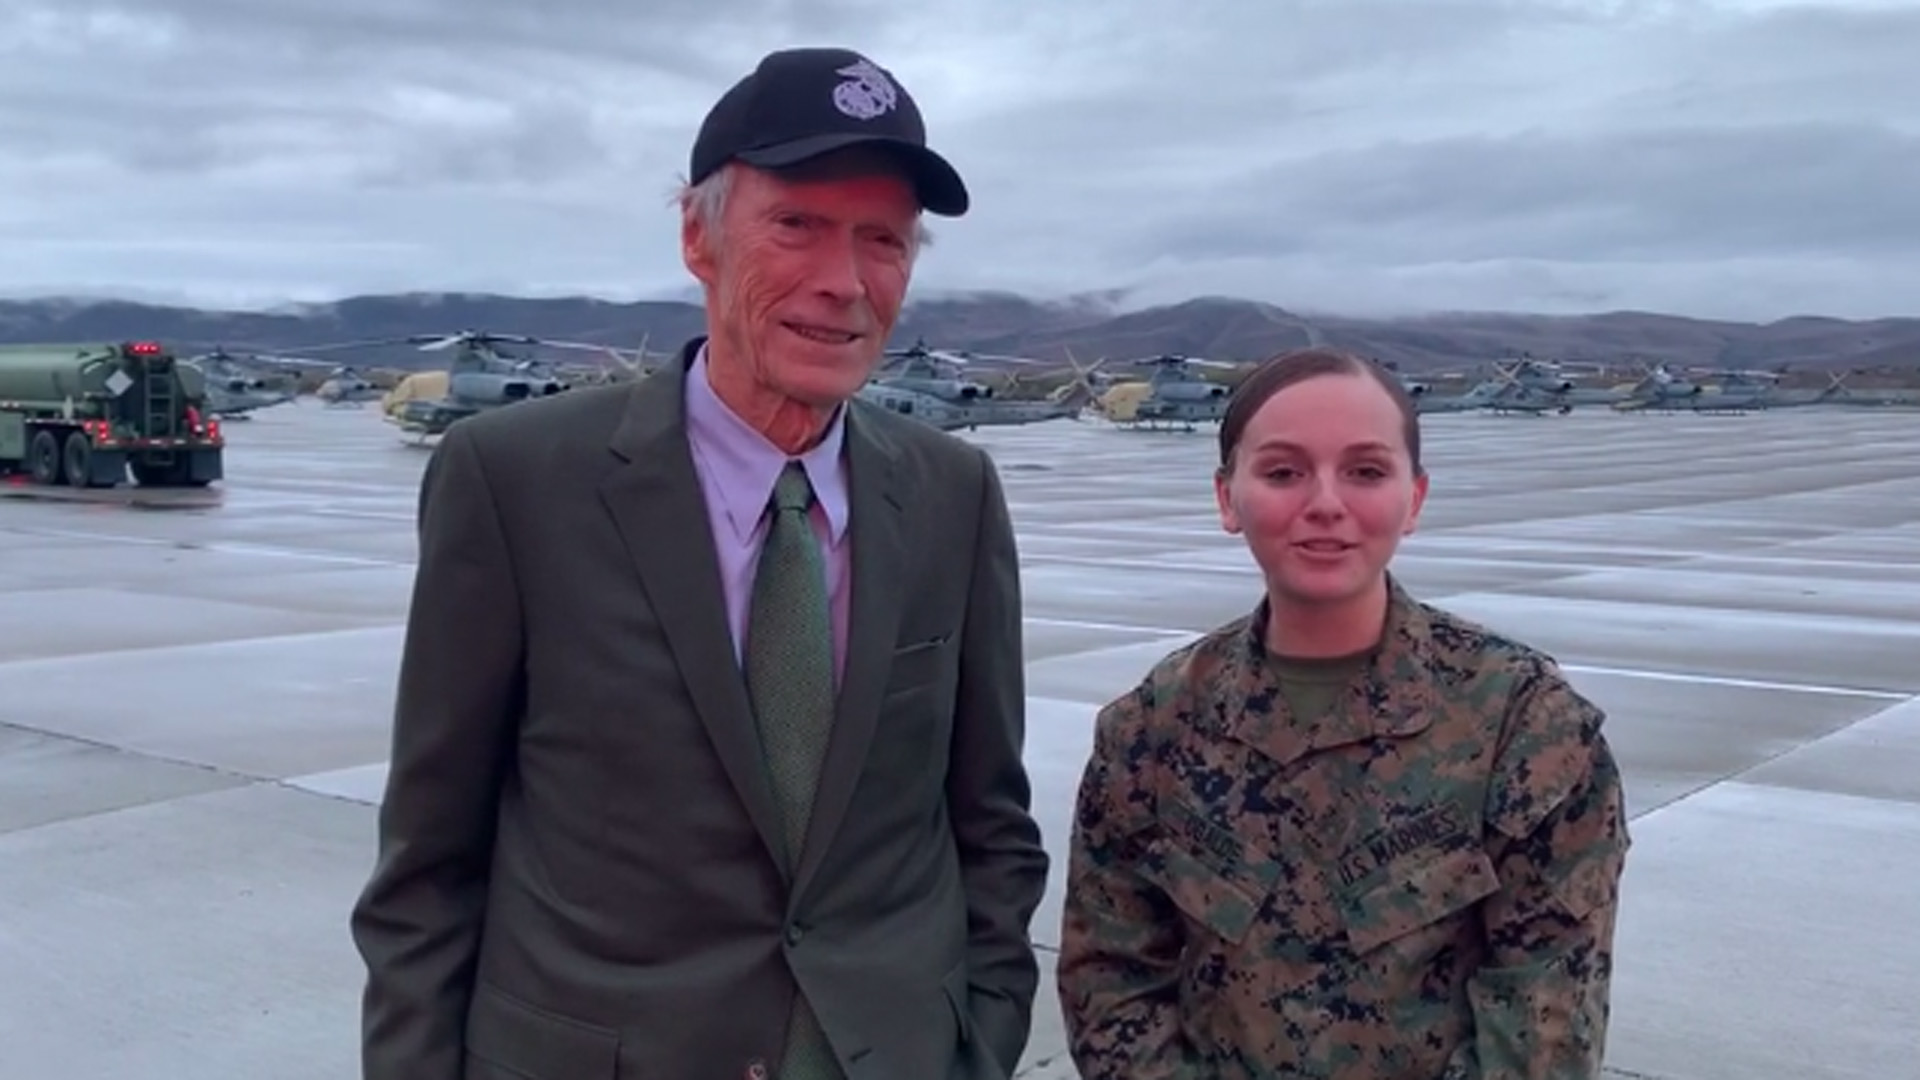 Clint Eastwood visited with Marines at Camp Pendleton after an advanced showing of his new movie on Dec. 7, 2019. (Credit: Lance Cpl. Kerstin A. Roberts / U.S. Marine Corps)